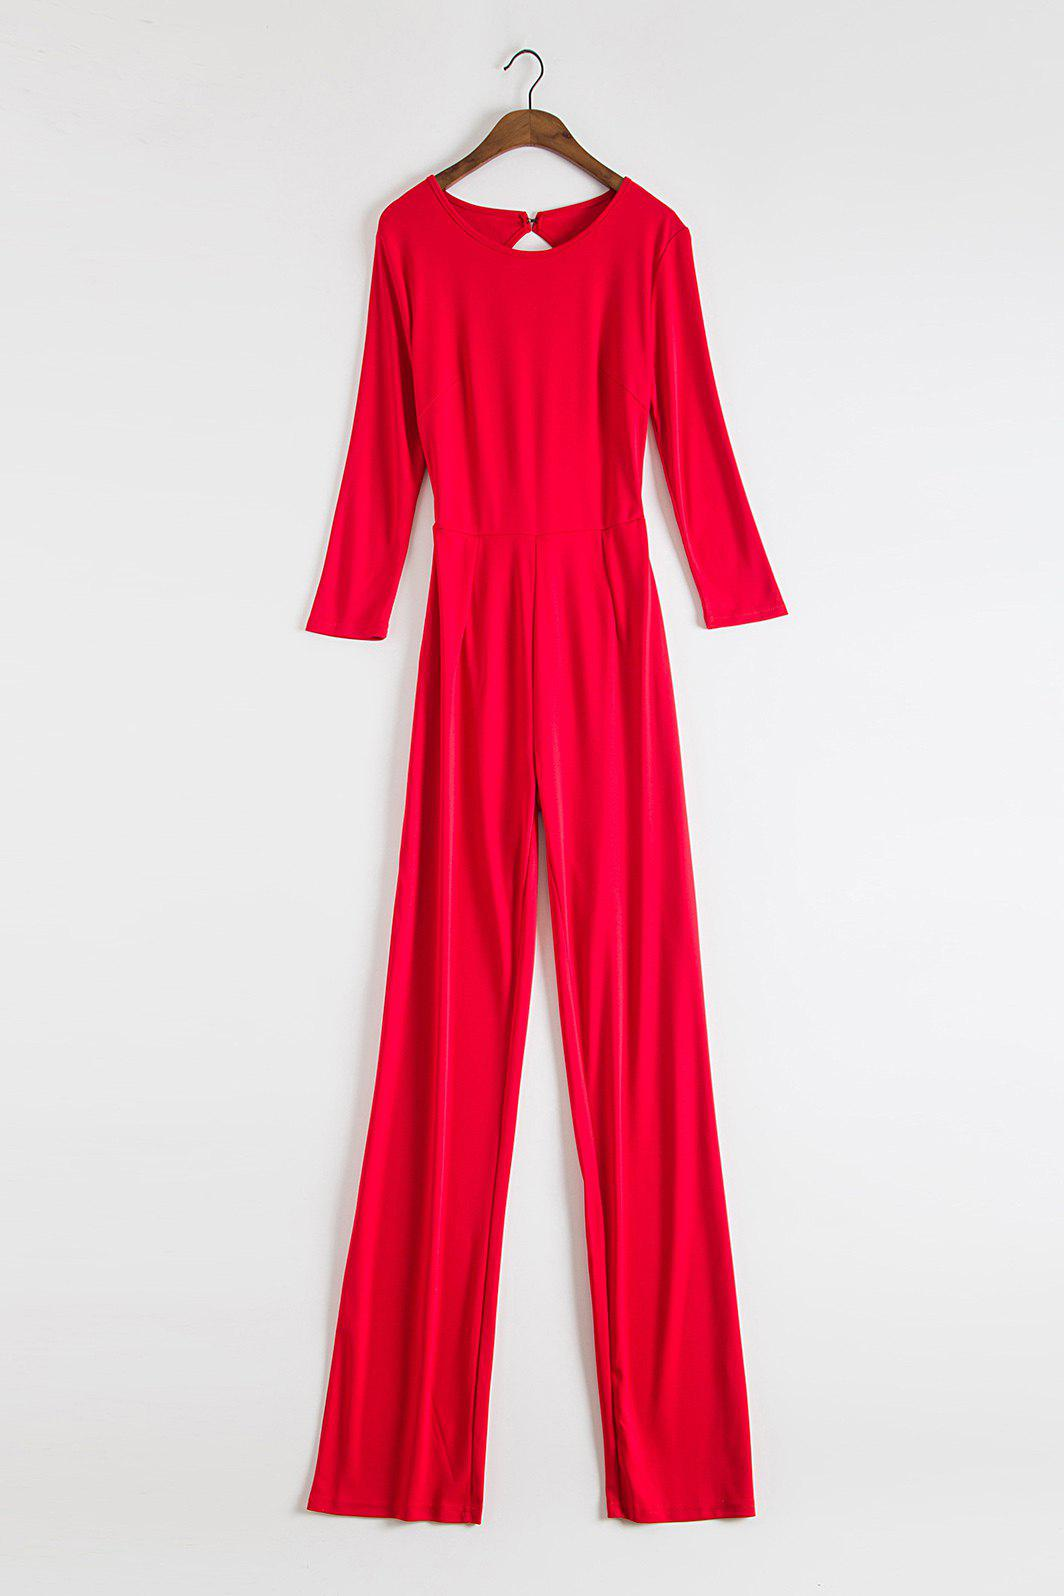 New Stylish Round Neck 3/4 Sleeve Backless Wide Leg Women's Red Jumpsuit